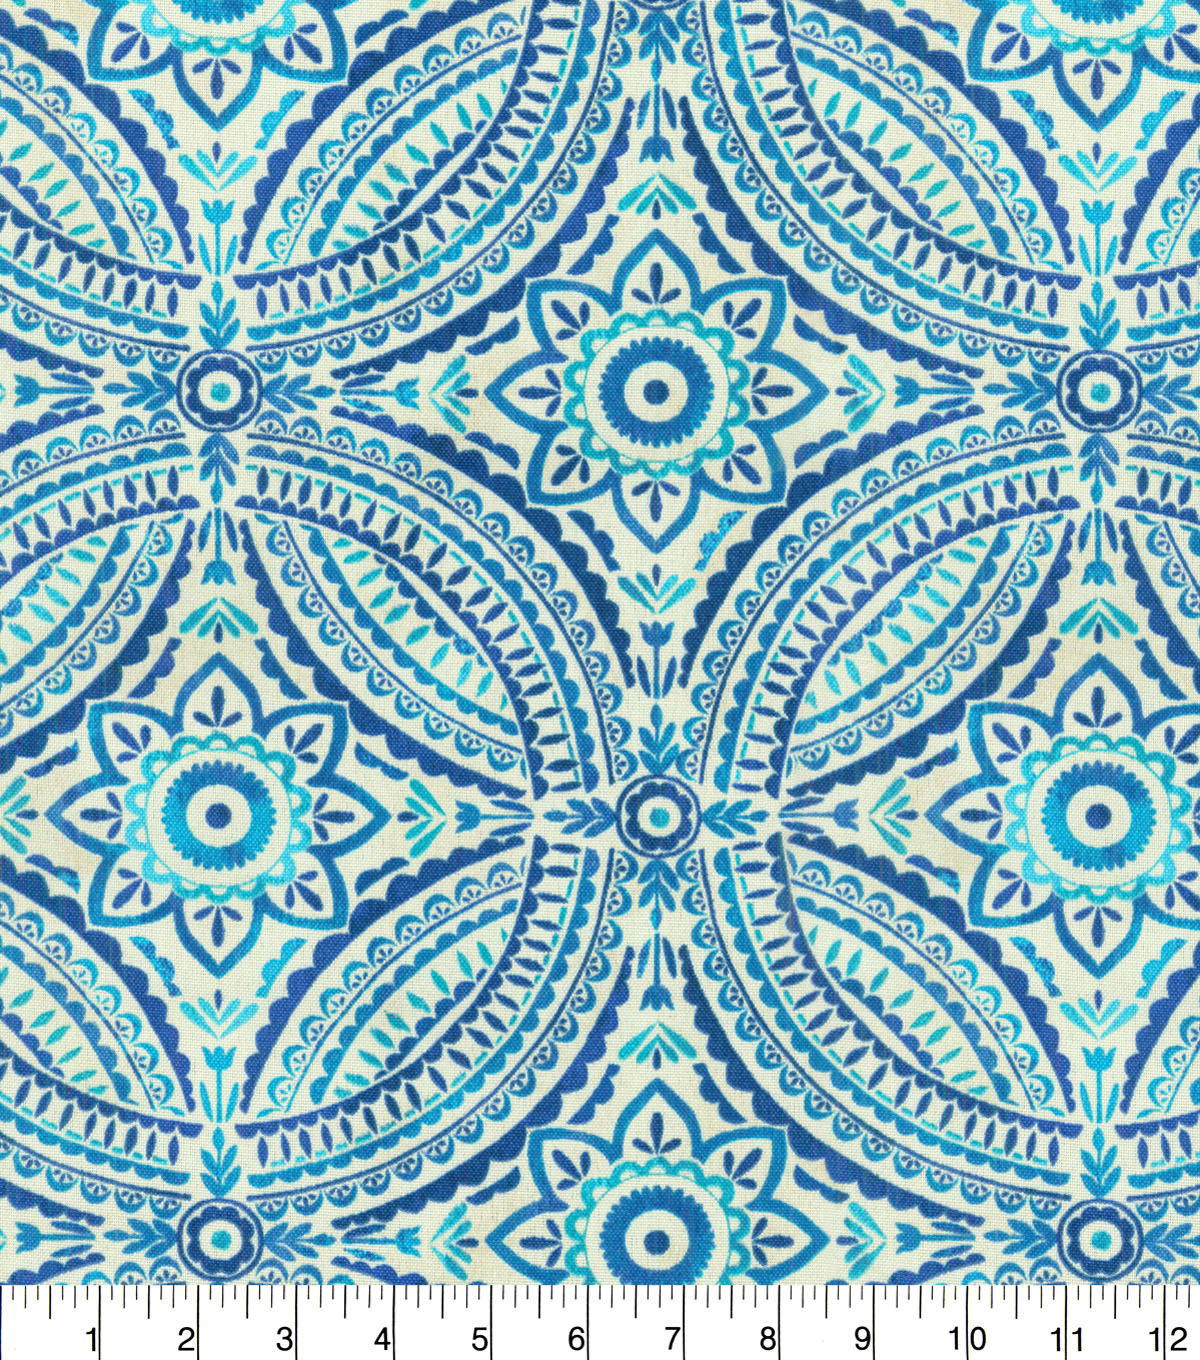 Genial Kelly Ripa Home Outdoor Fabric 54\u0022 Blissfulness Indigo